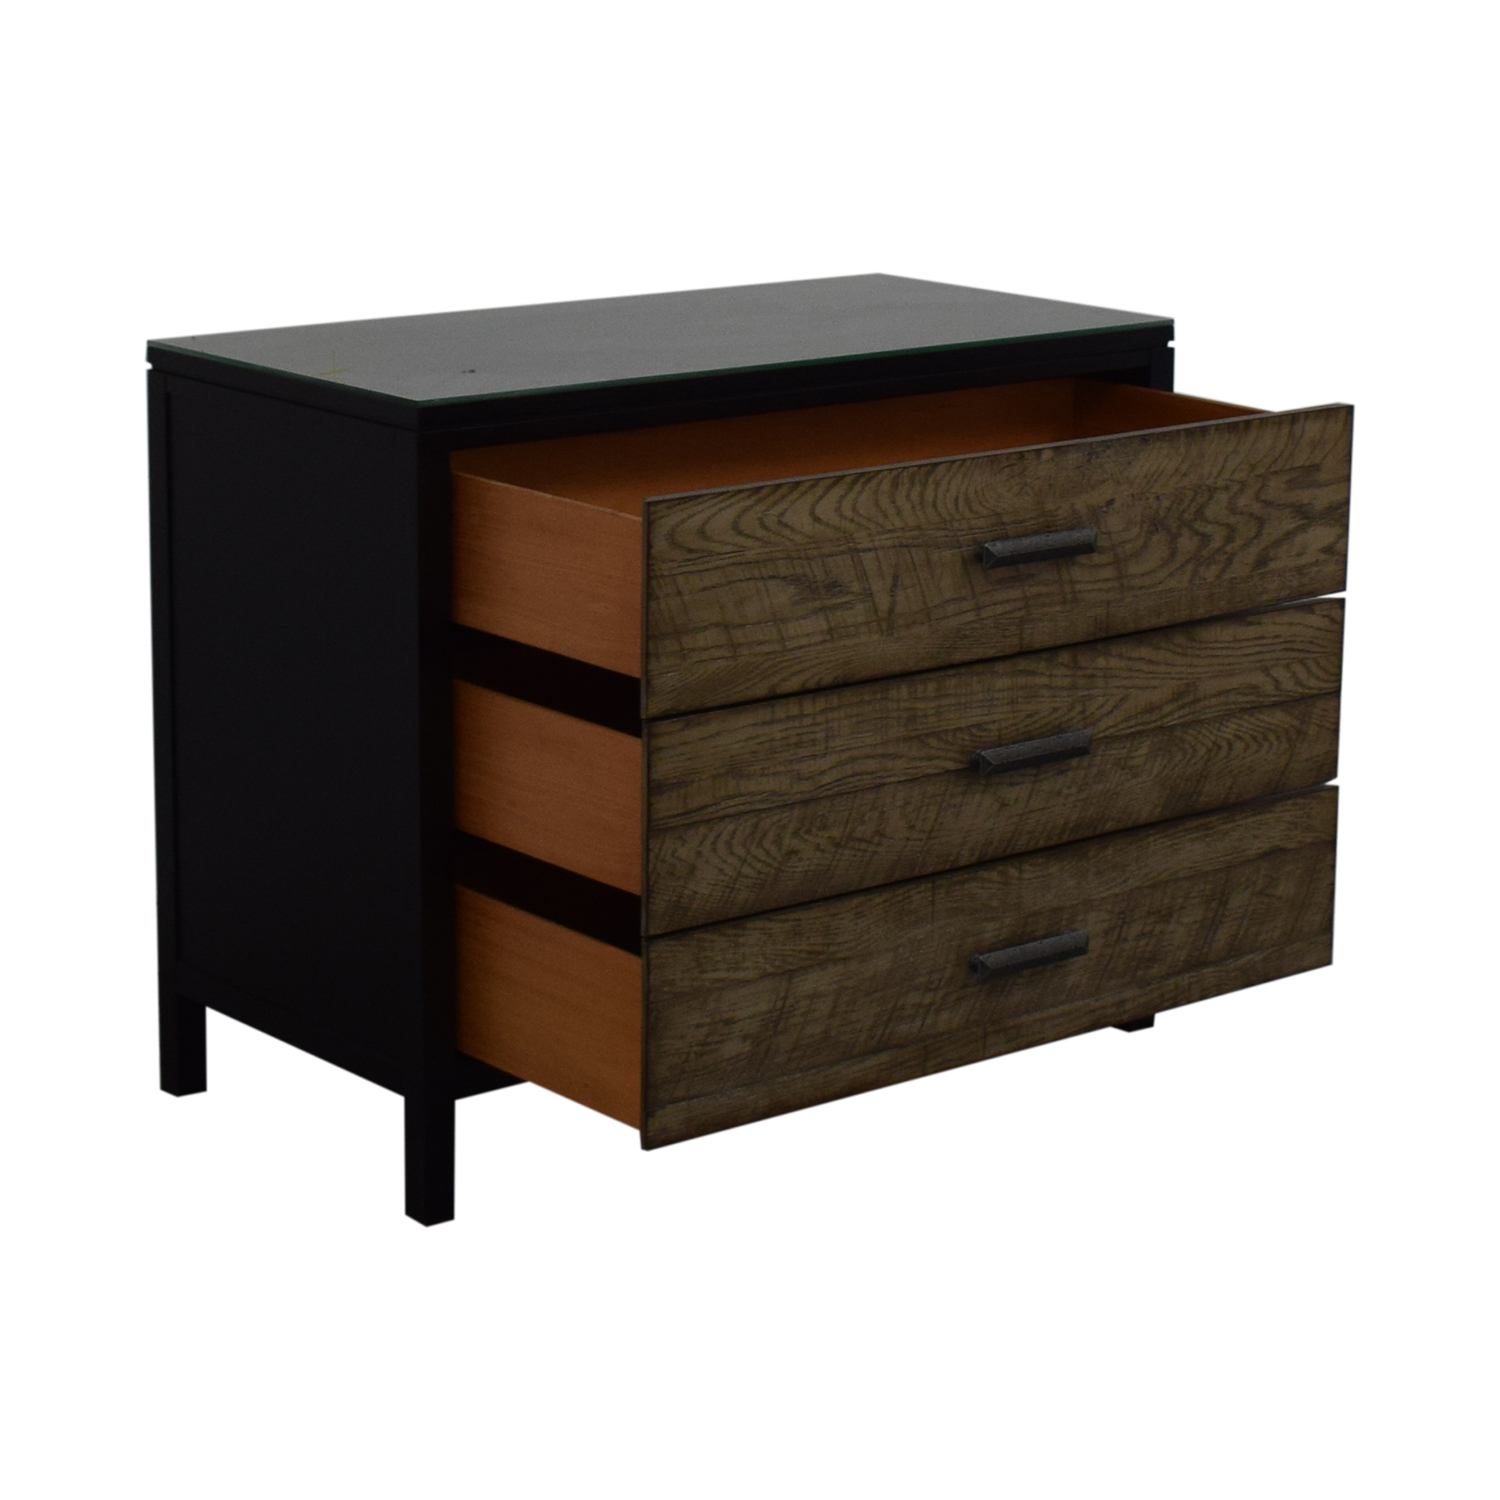 Ethan Allen Ethan Allen Three-Drawer Dresser